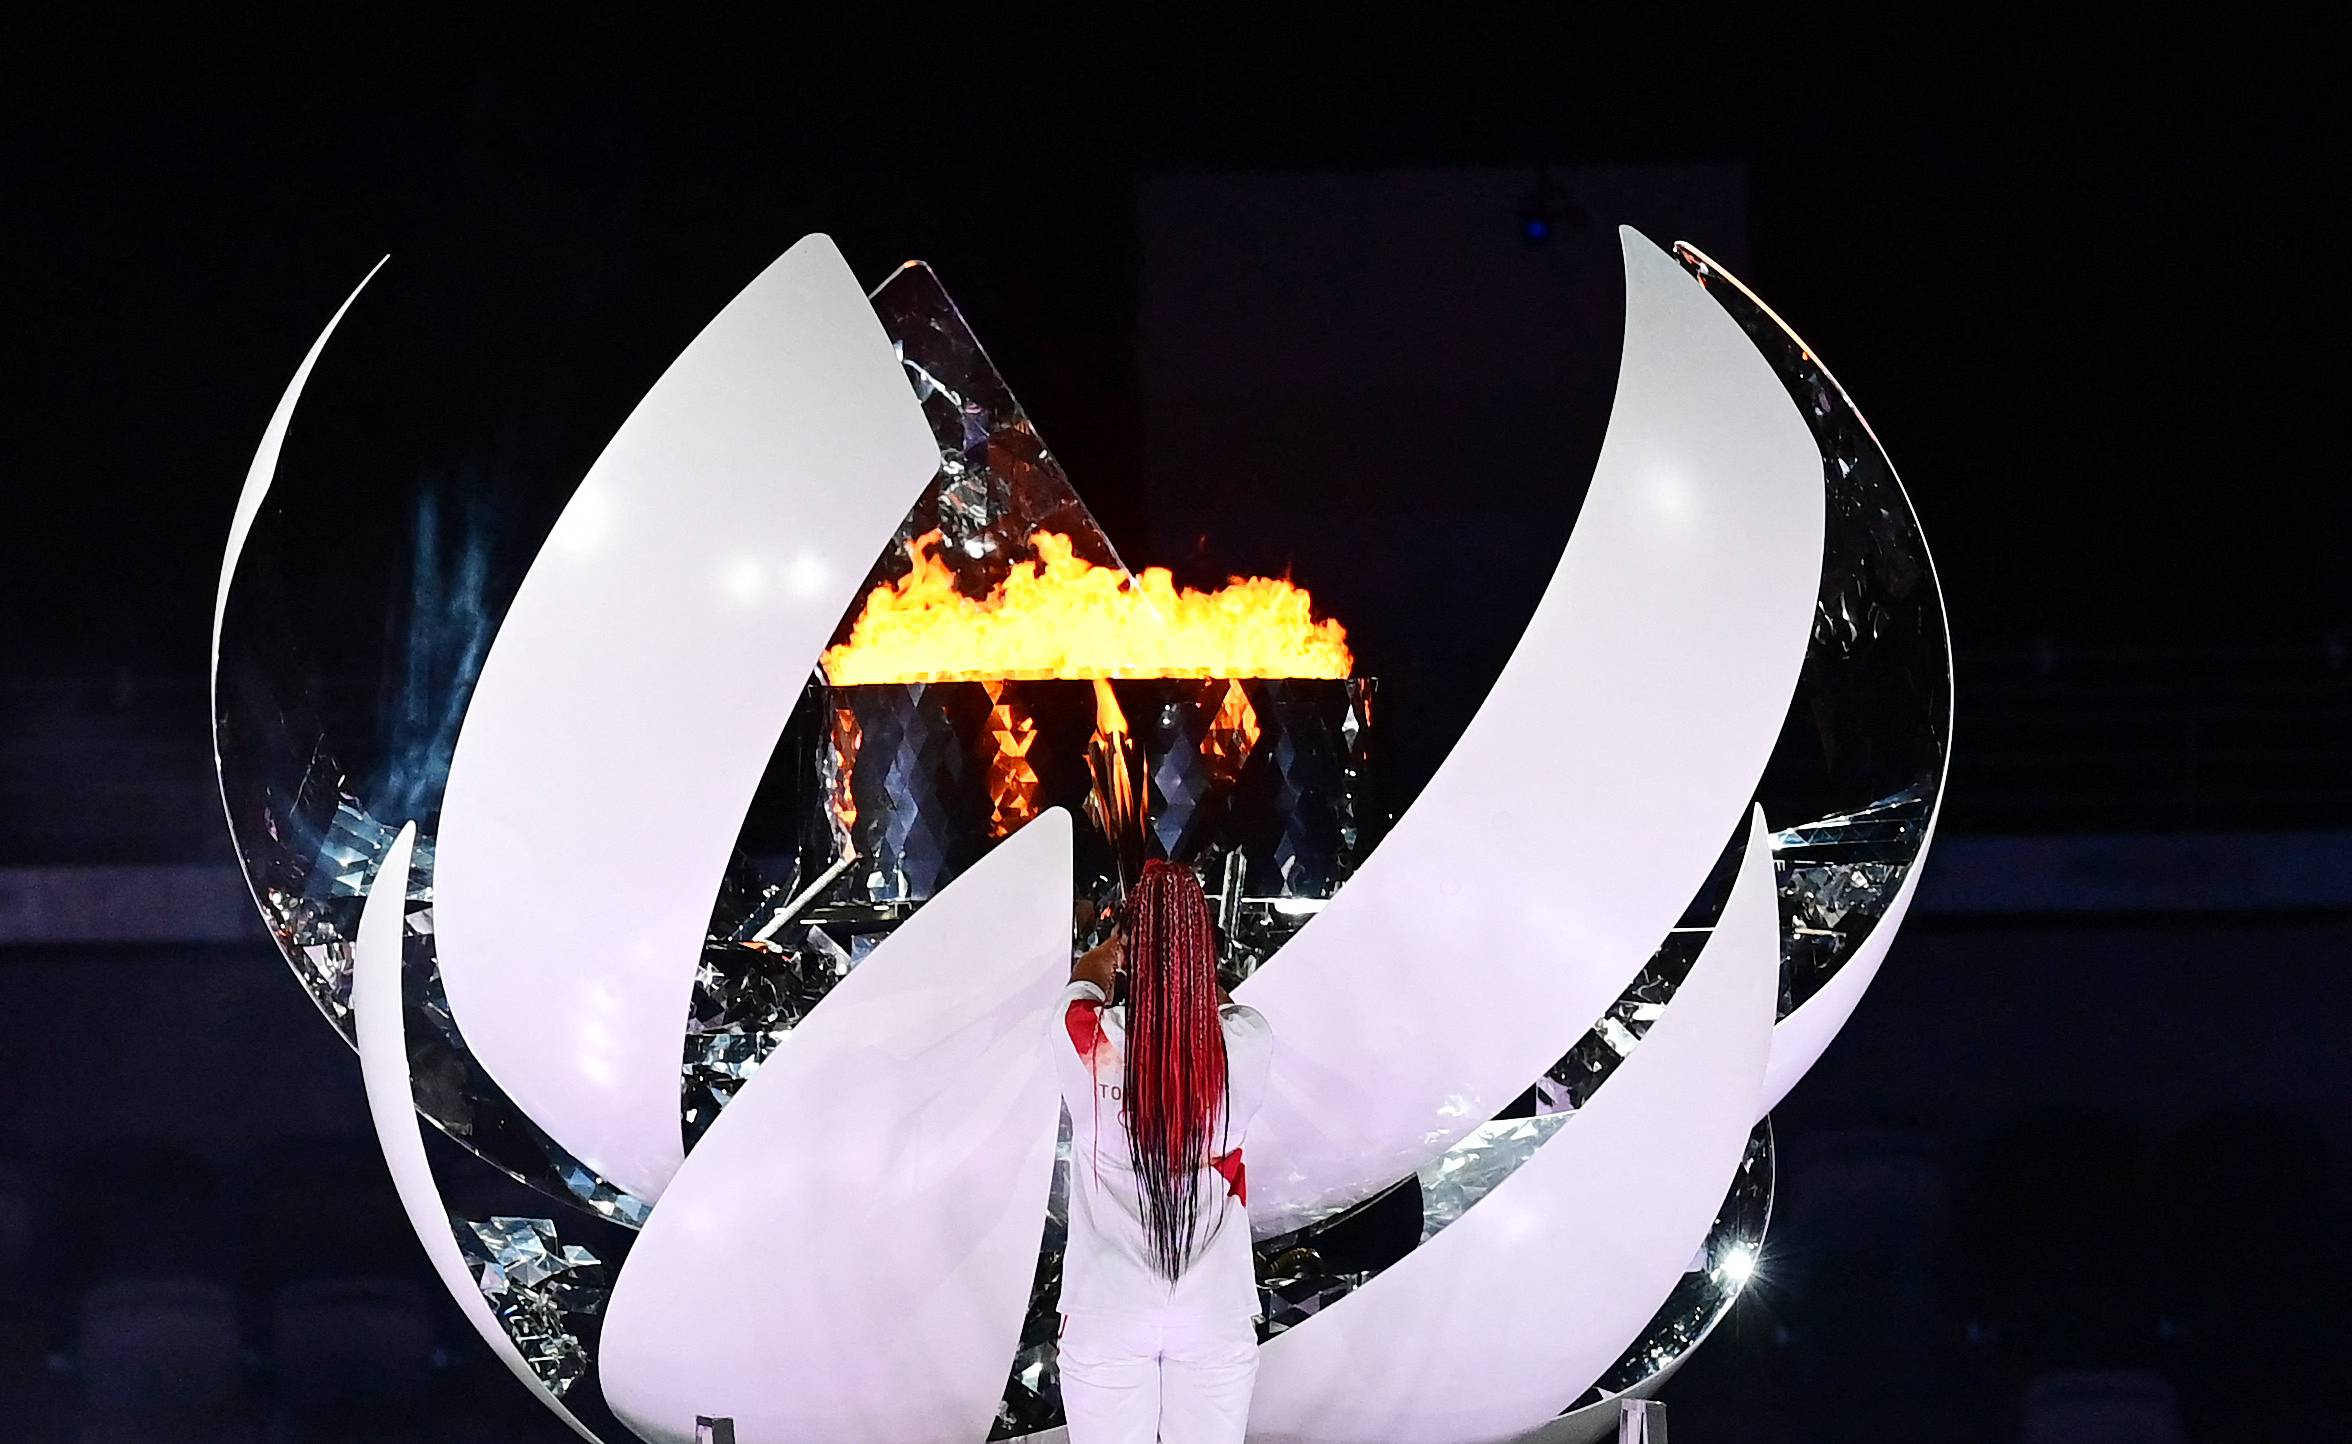 Tennis start Naomi Osaka lights the flame of hope in the Olympic Cauldron during the opening ceremony. | AFP-JIJI